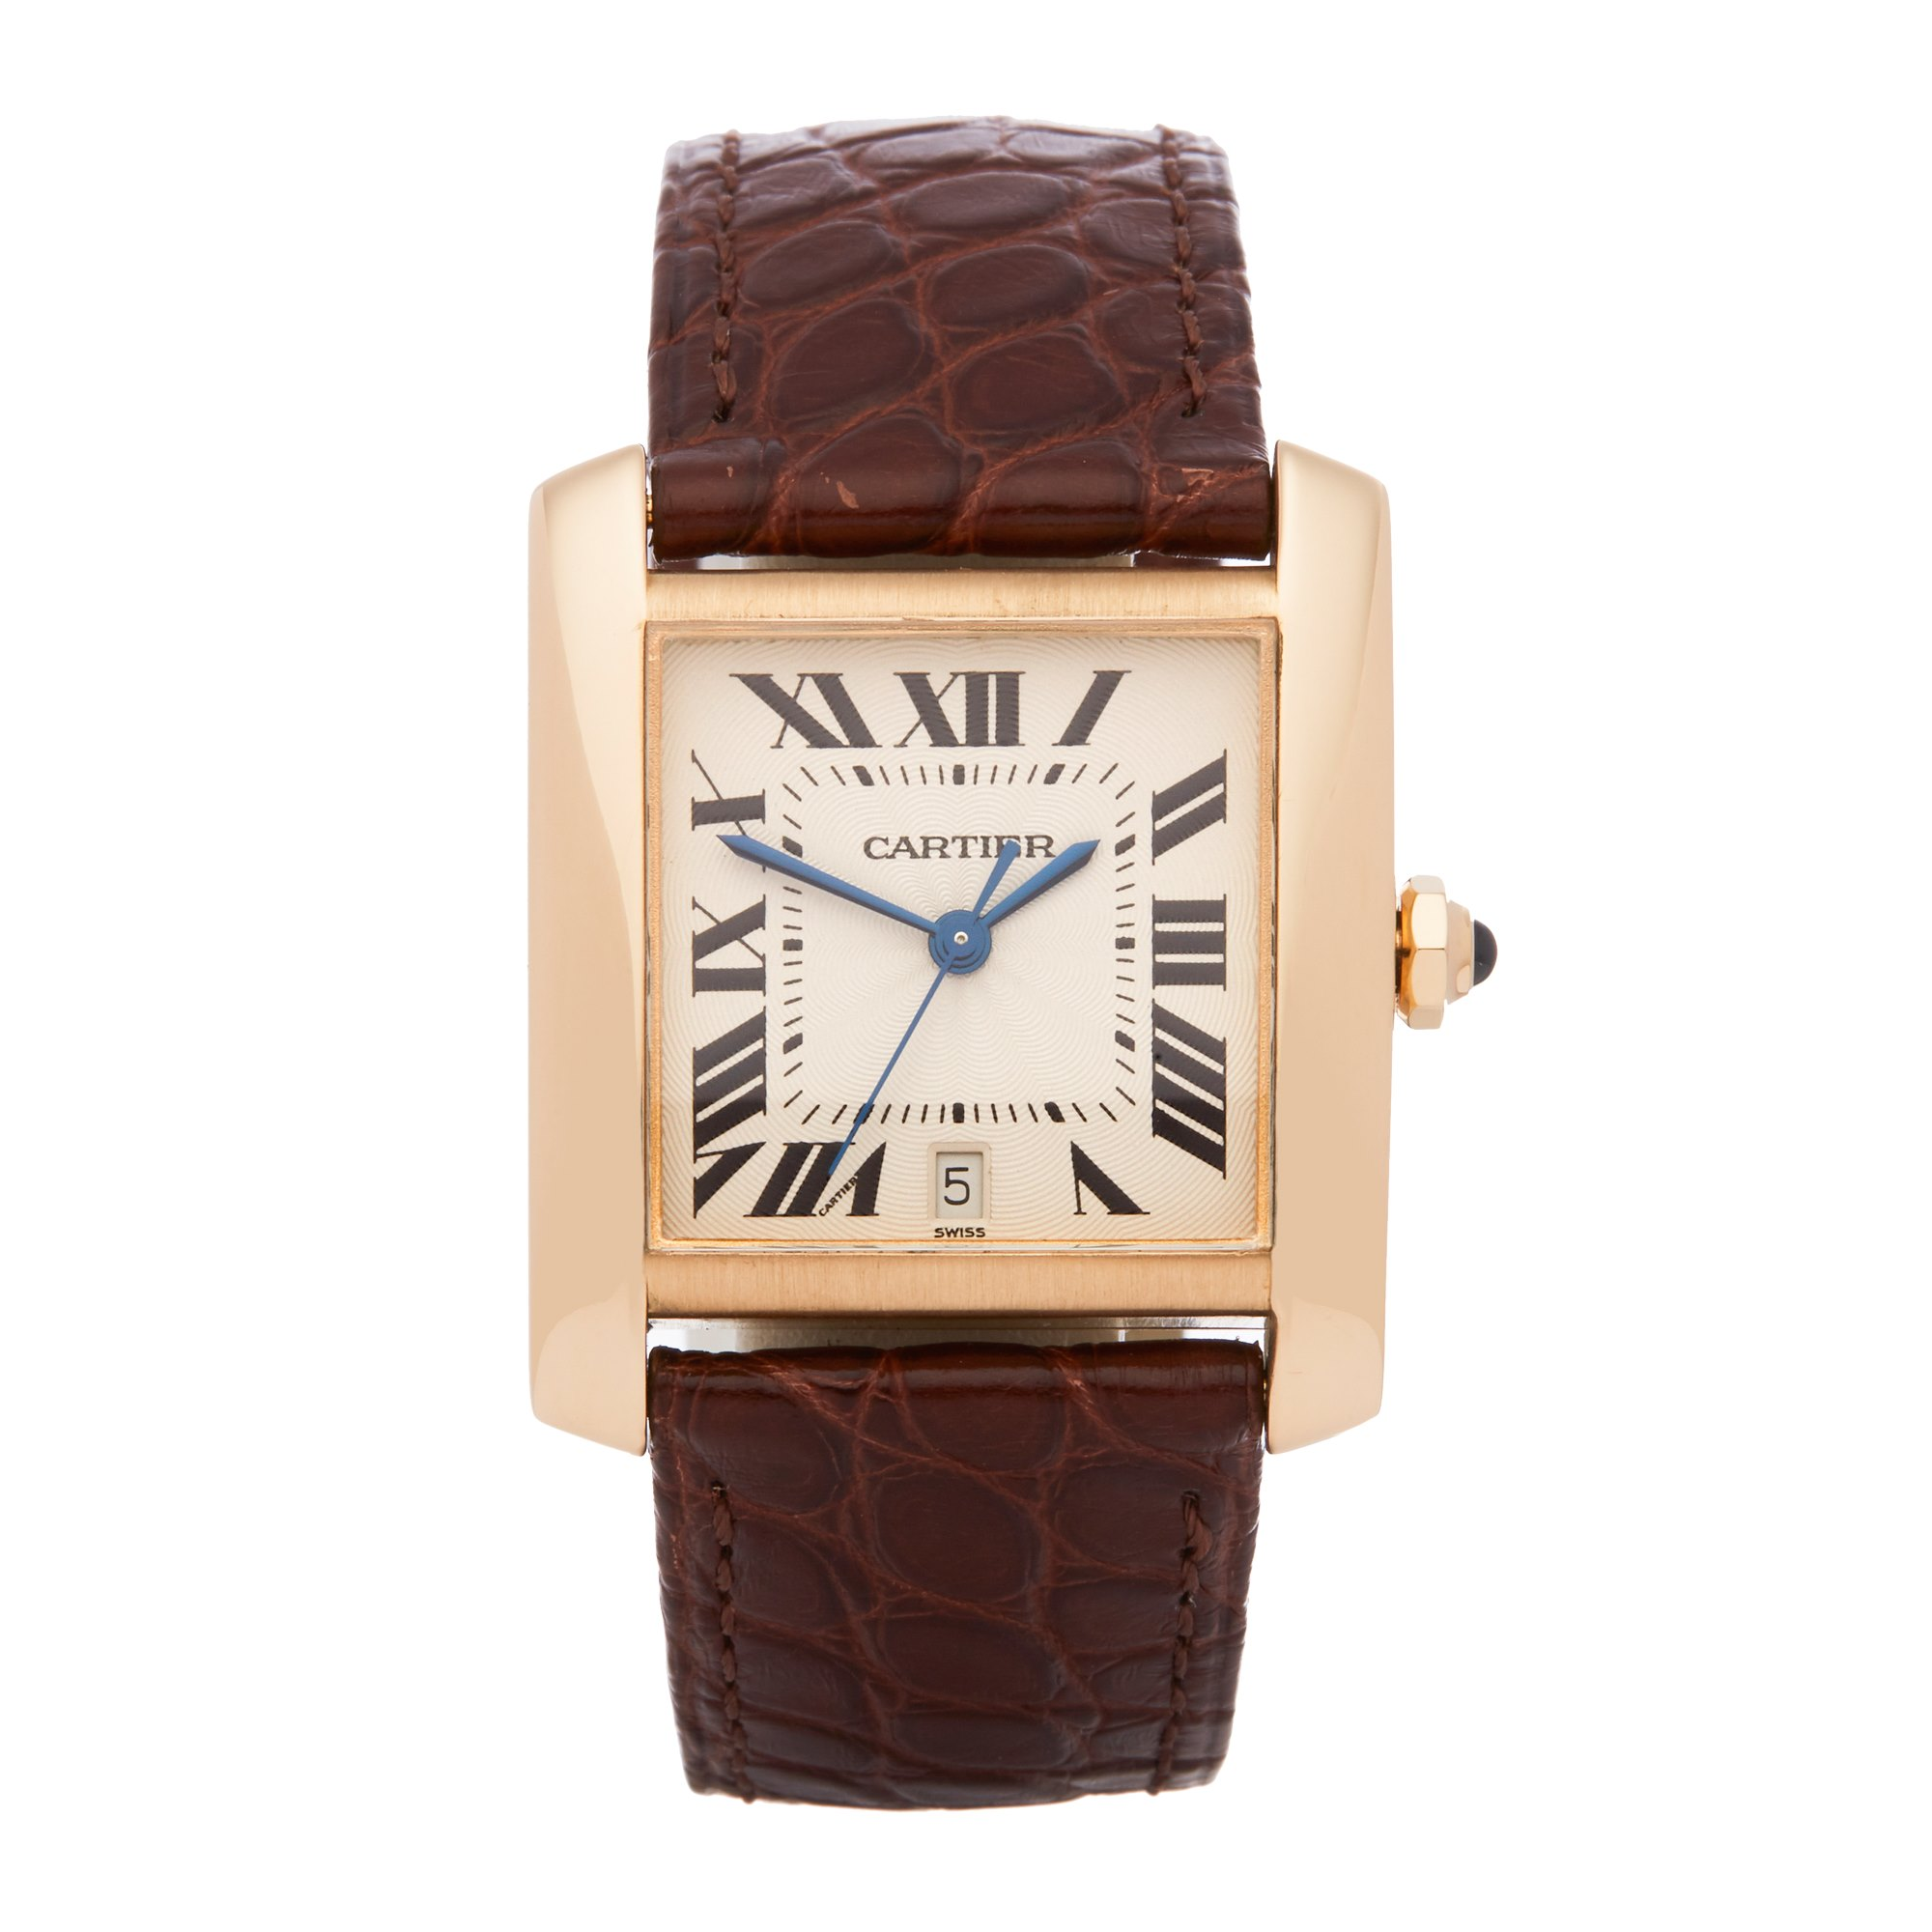 Cartier Tank Francaise Large Automatic 18K Yellow Gold 1840